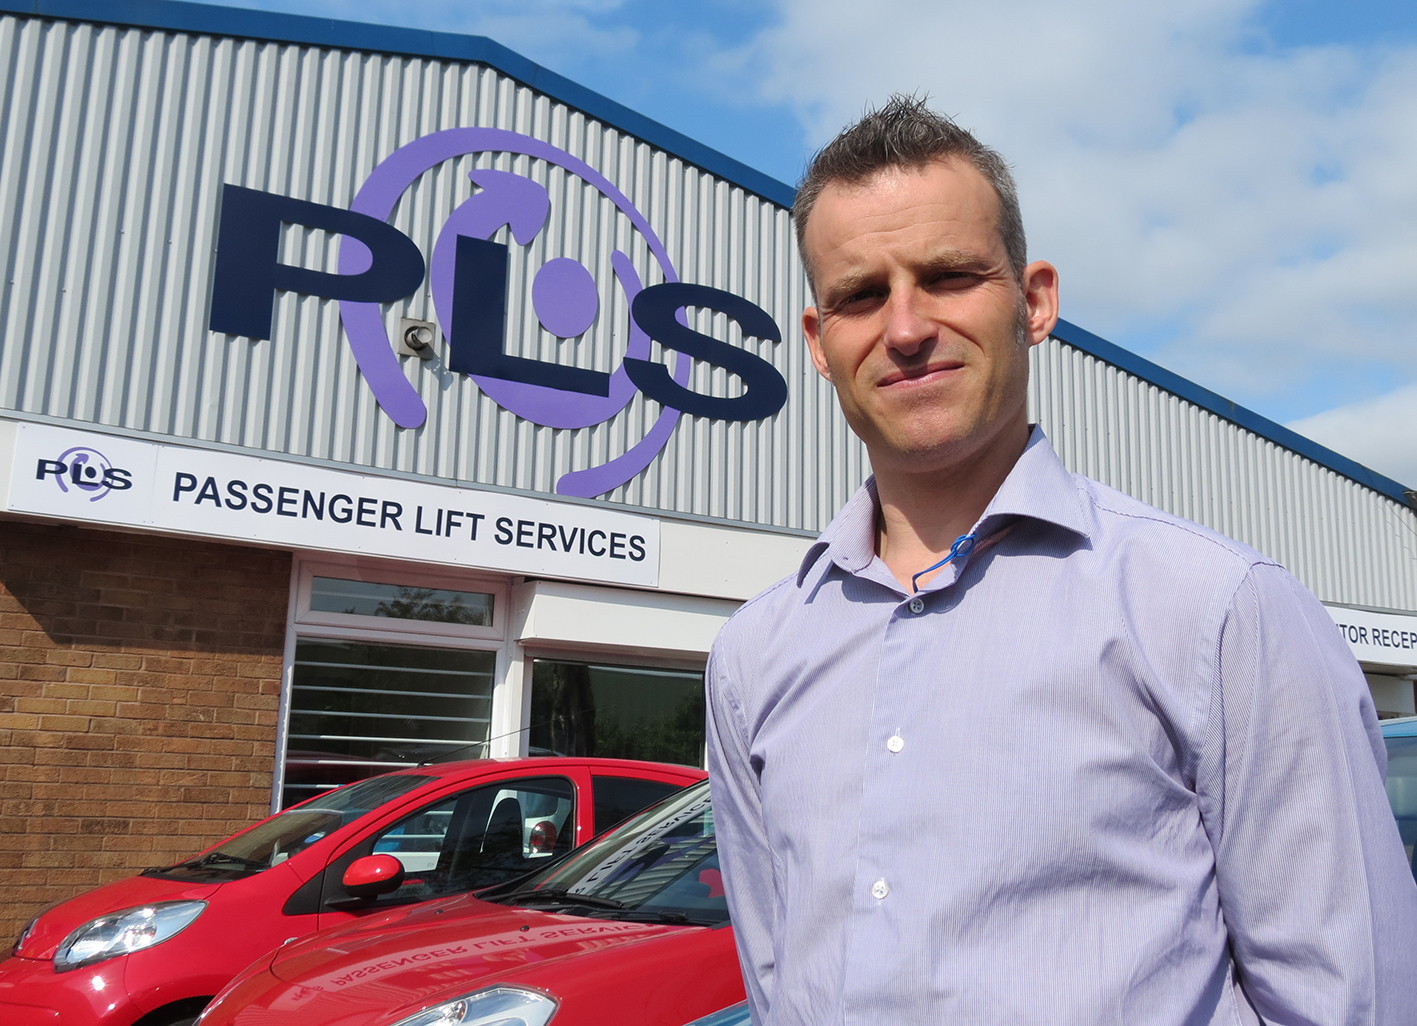 20-year-service Adam Beck promoted to PLS Managing Director